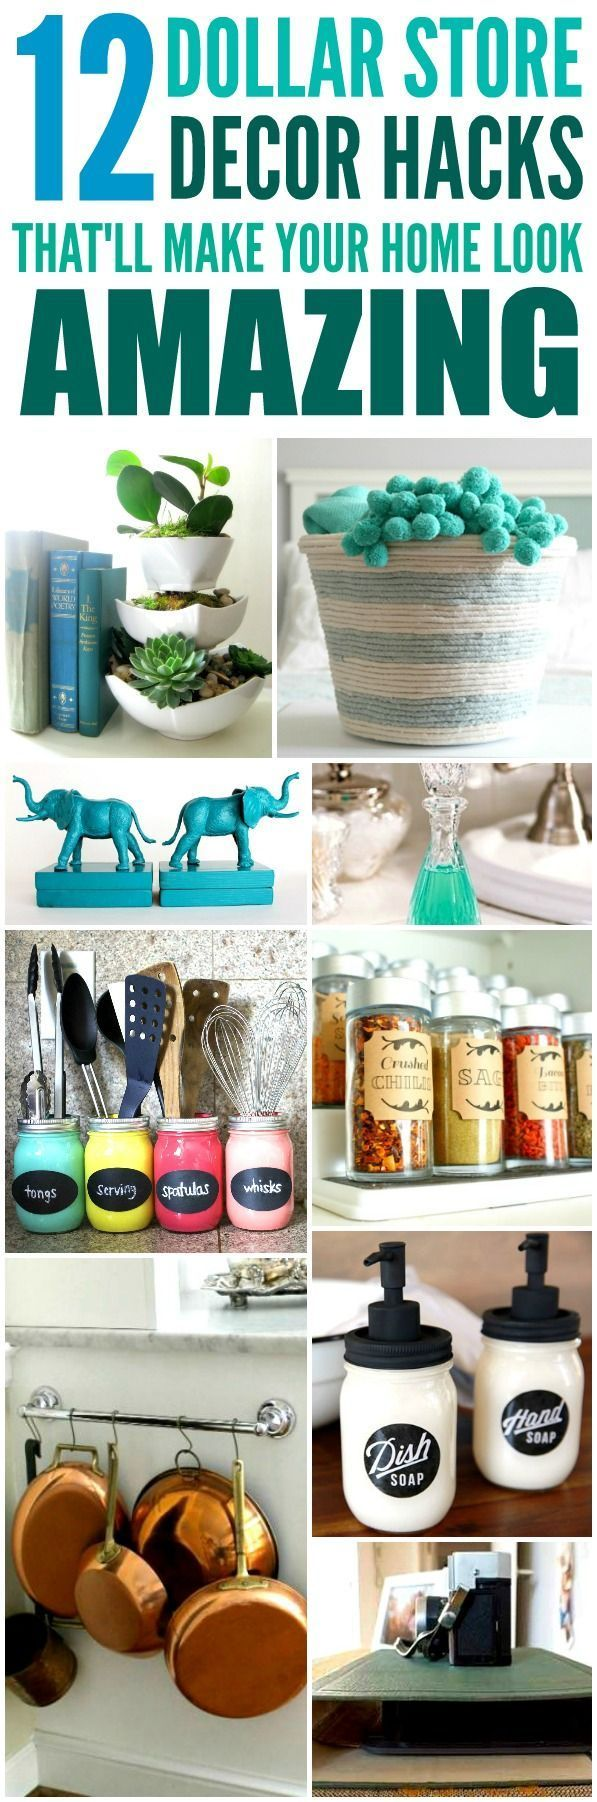 These 12 Dollar Store Decor Hacks are THE BEST! I'm so glad I found these AM...